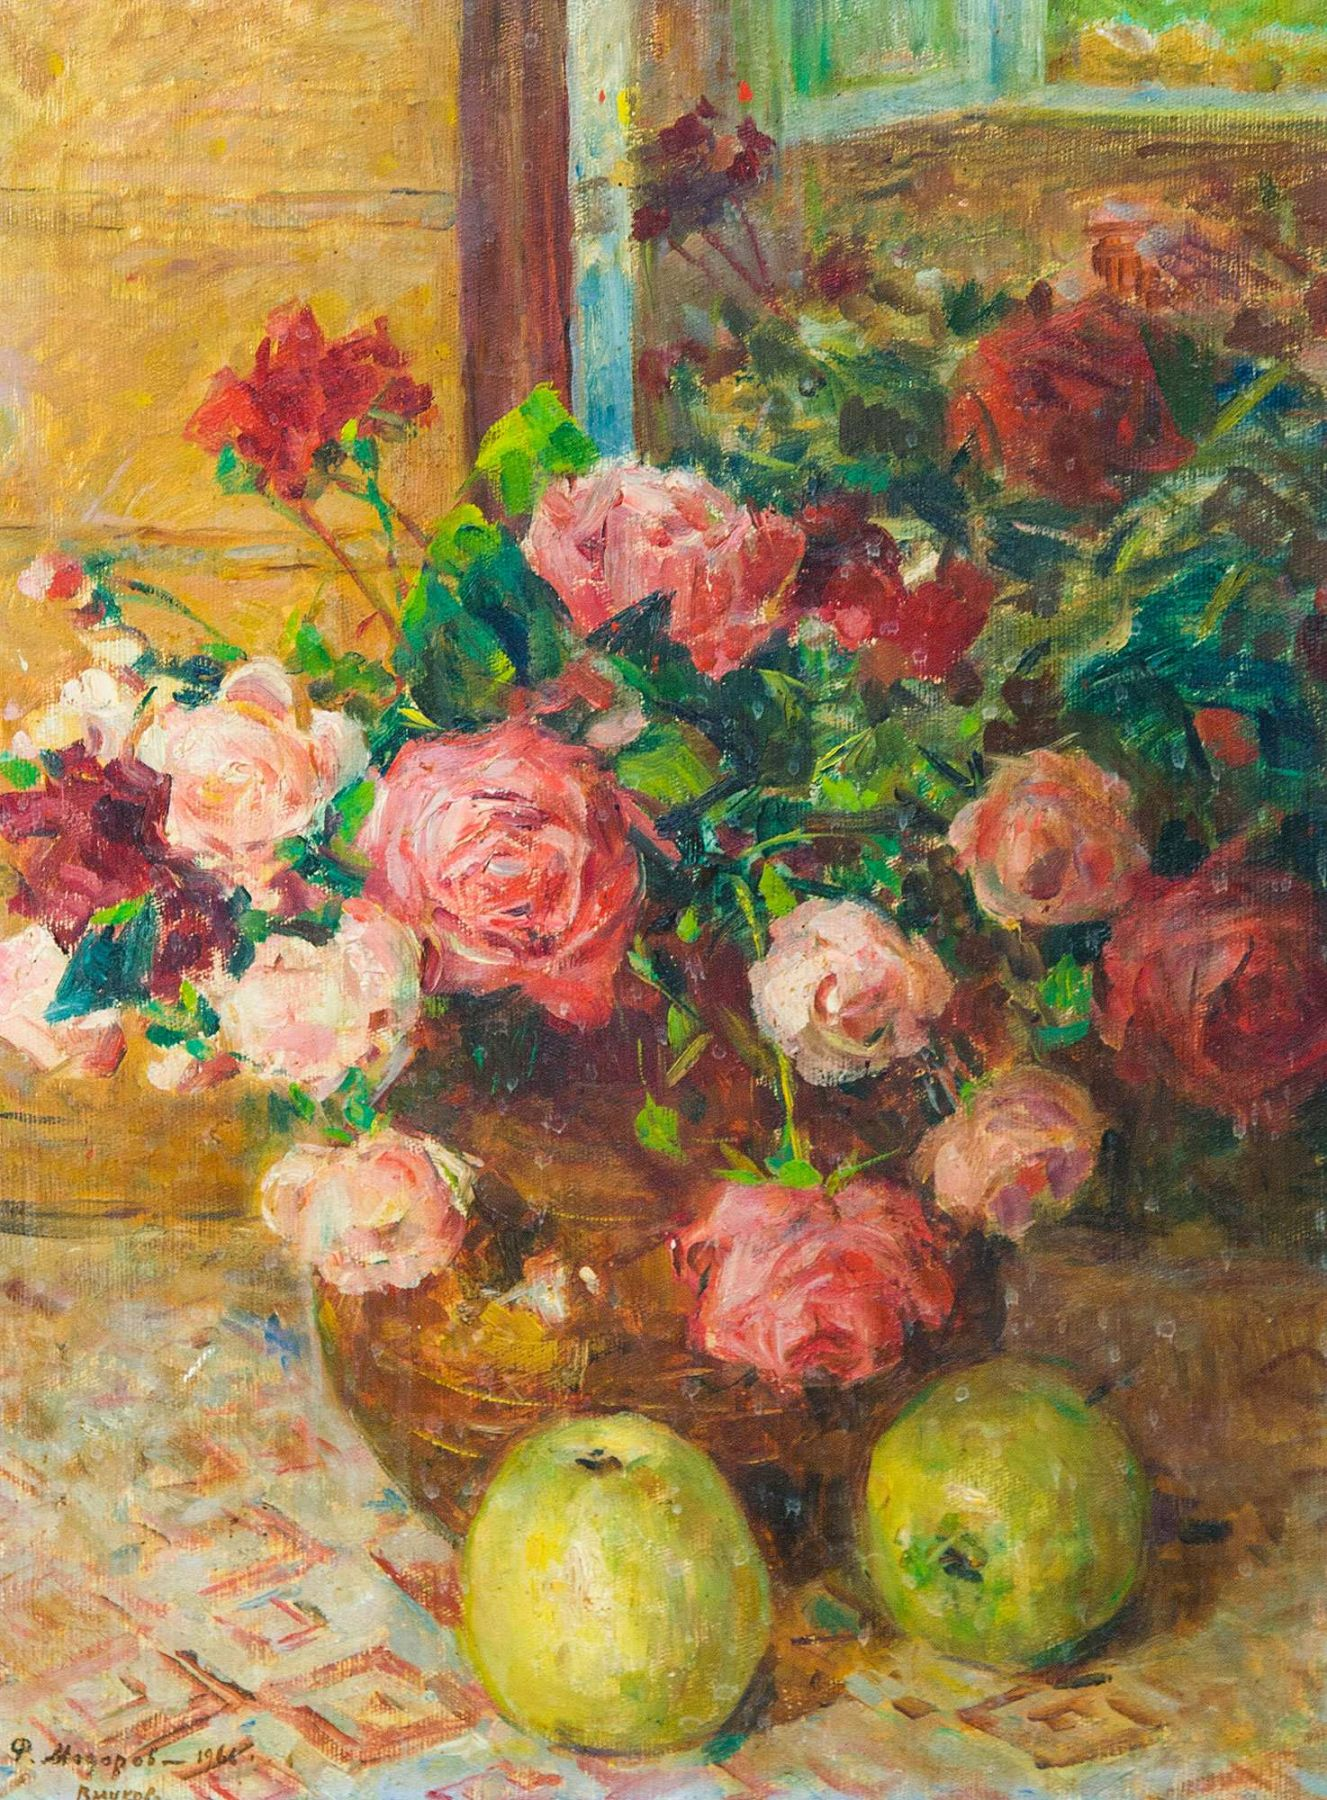 Still-life with apples and roses.